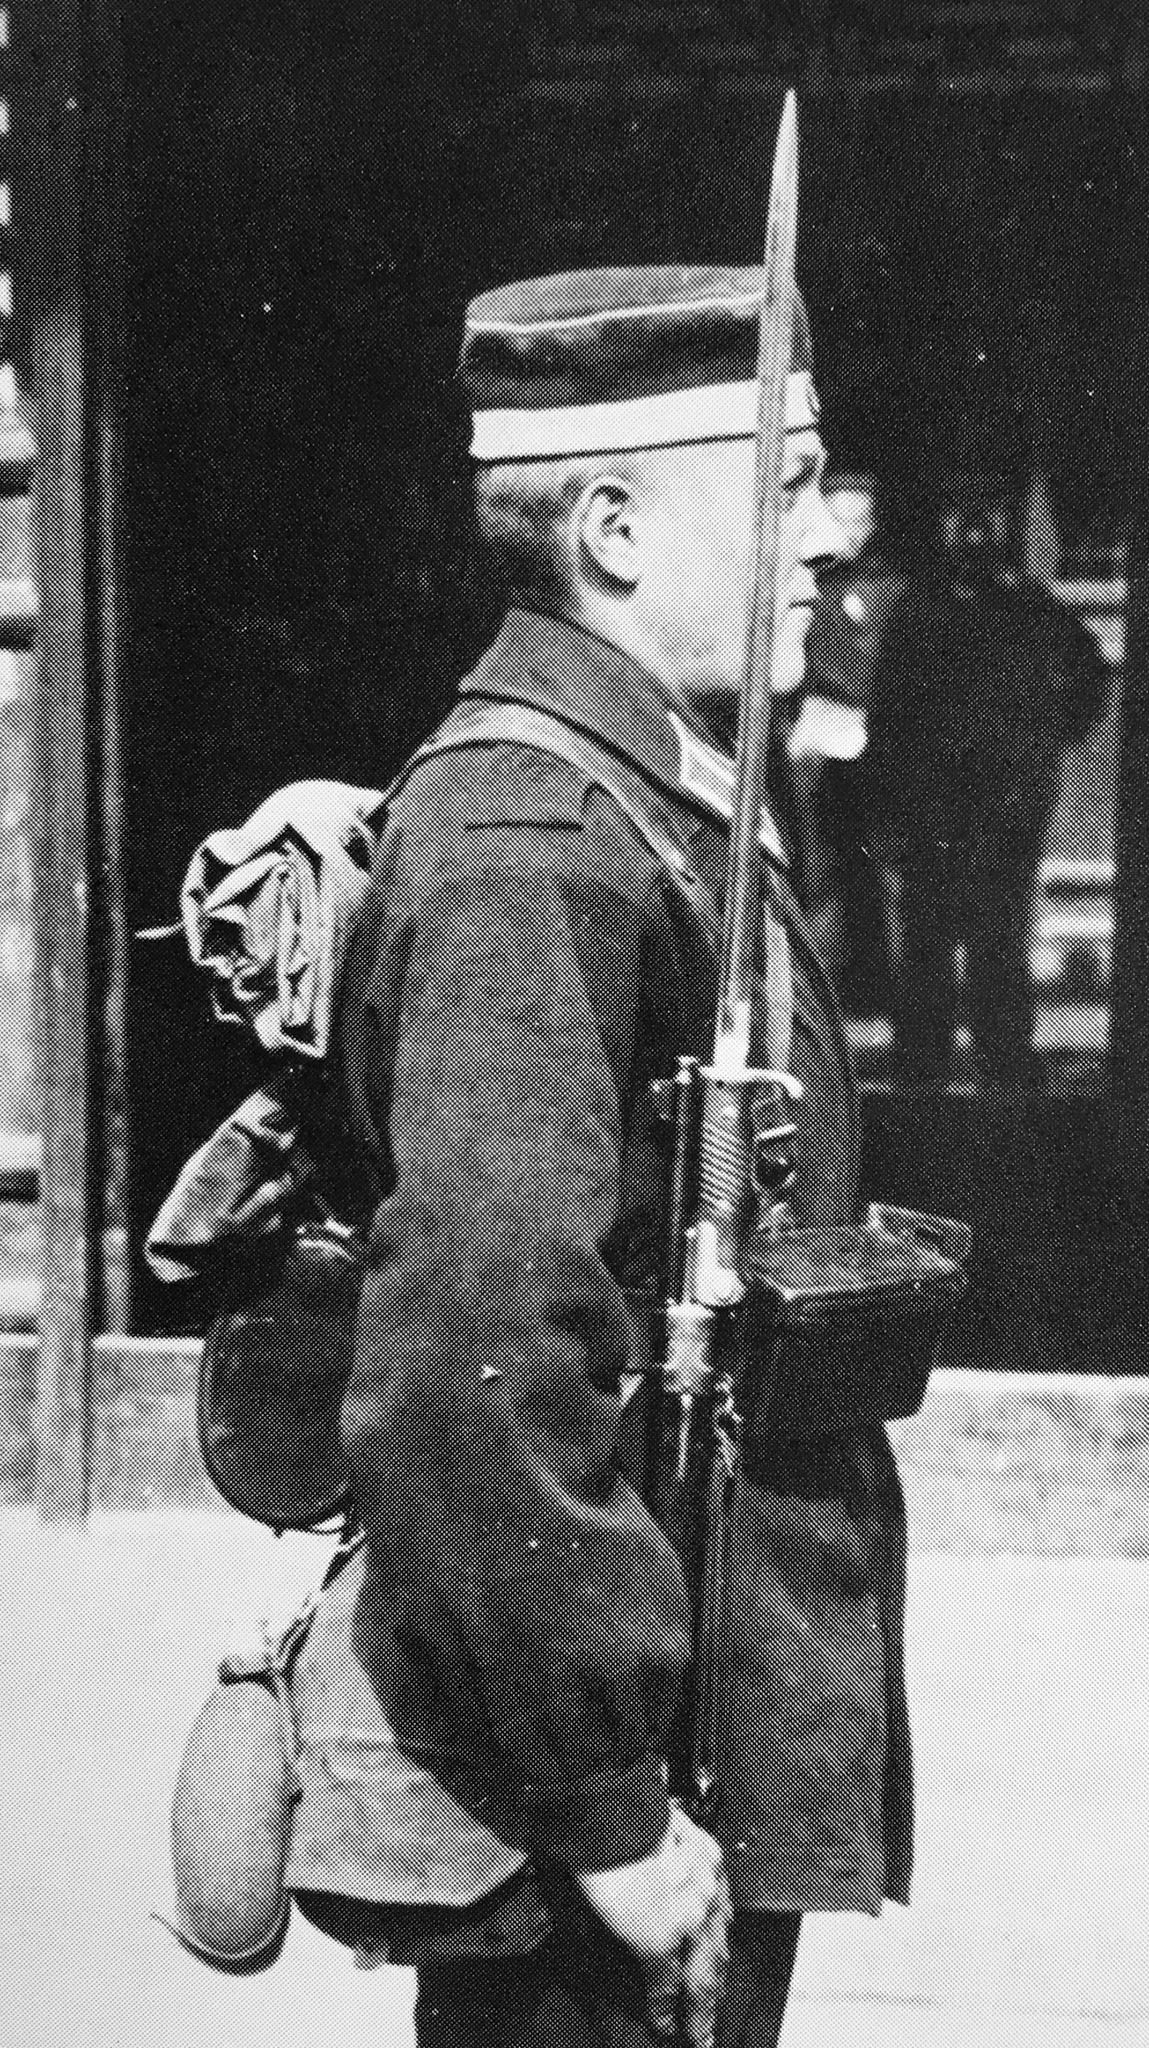 German expedition force in China with Mauser 98